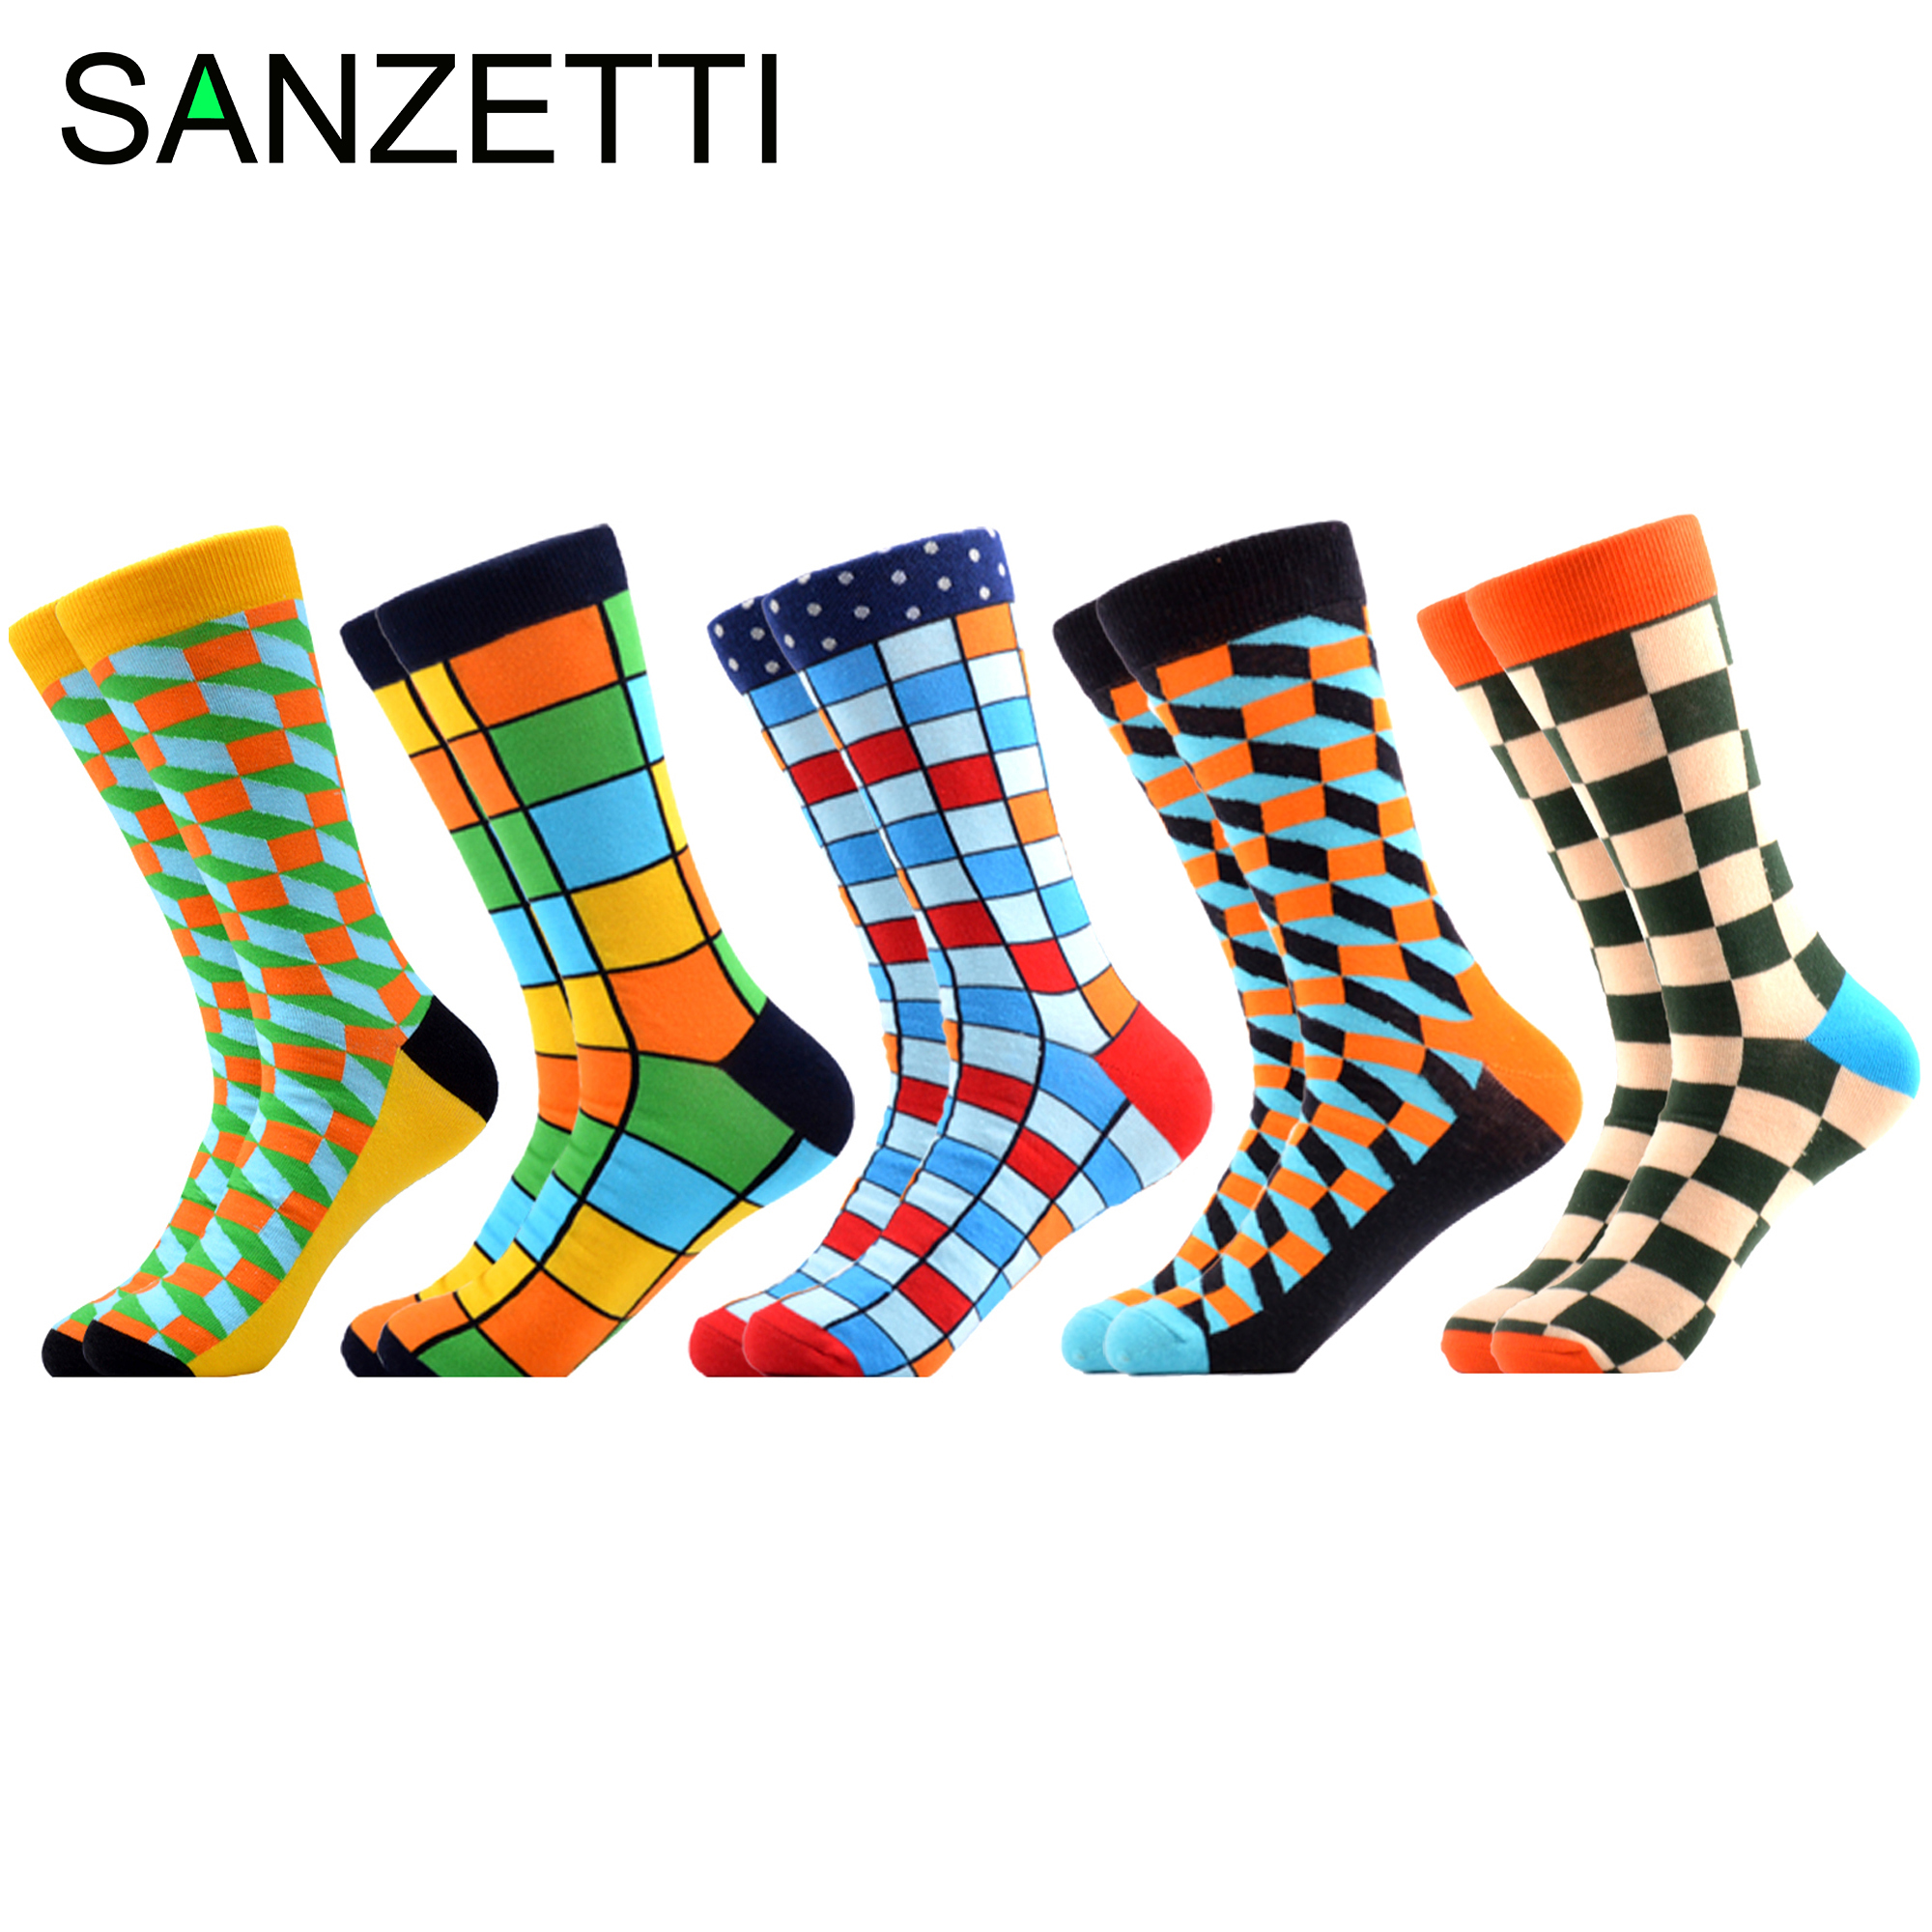 SANZETTI 5 Pair/Lot Colorful Men's Casual Combed Cotton Wedding Happy Crew Socks Funny Hip Hop Novelty Bright Plaid Dress Socks